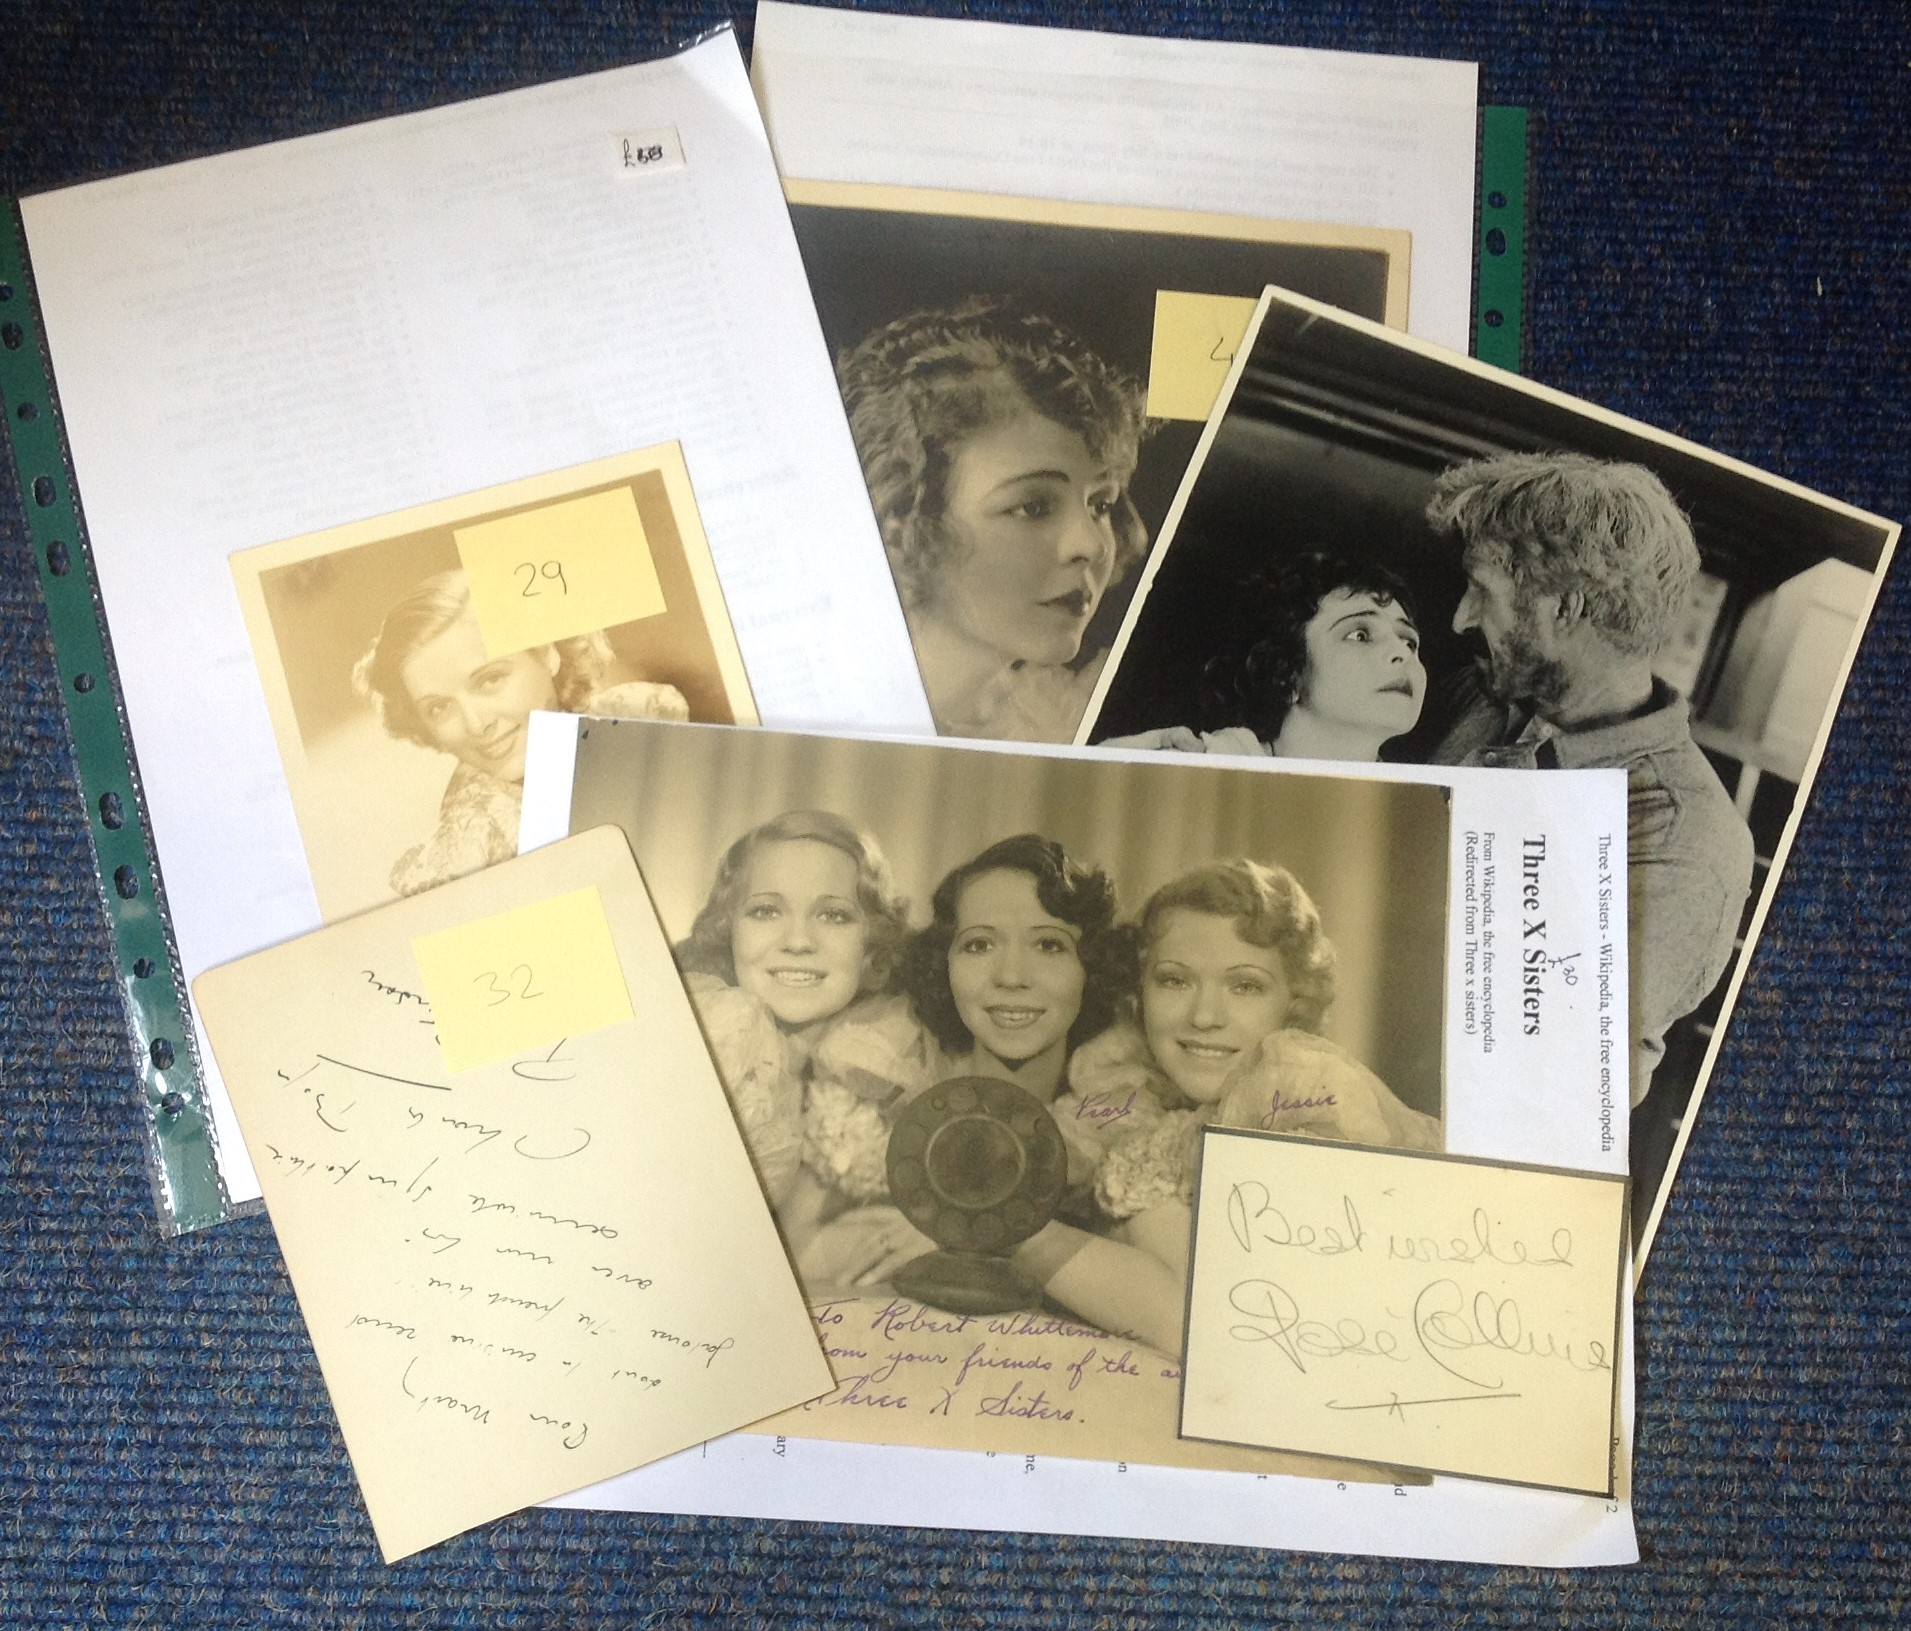 Lot 6 - Vintage TV/film signed collection. 5 items. Signatures include Helene Chadwick, Jose Collins, Pat